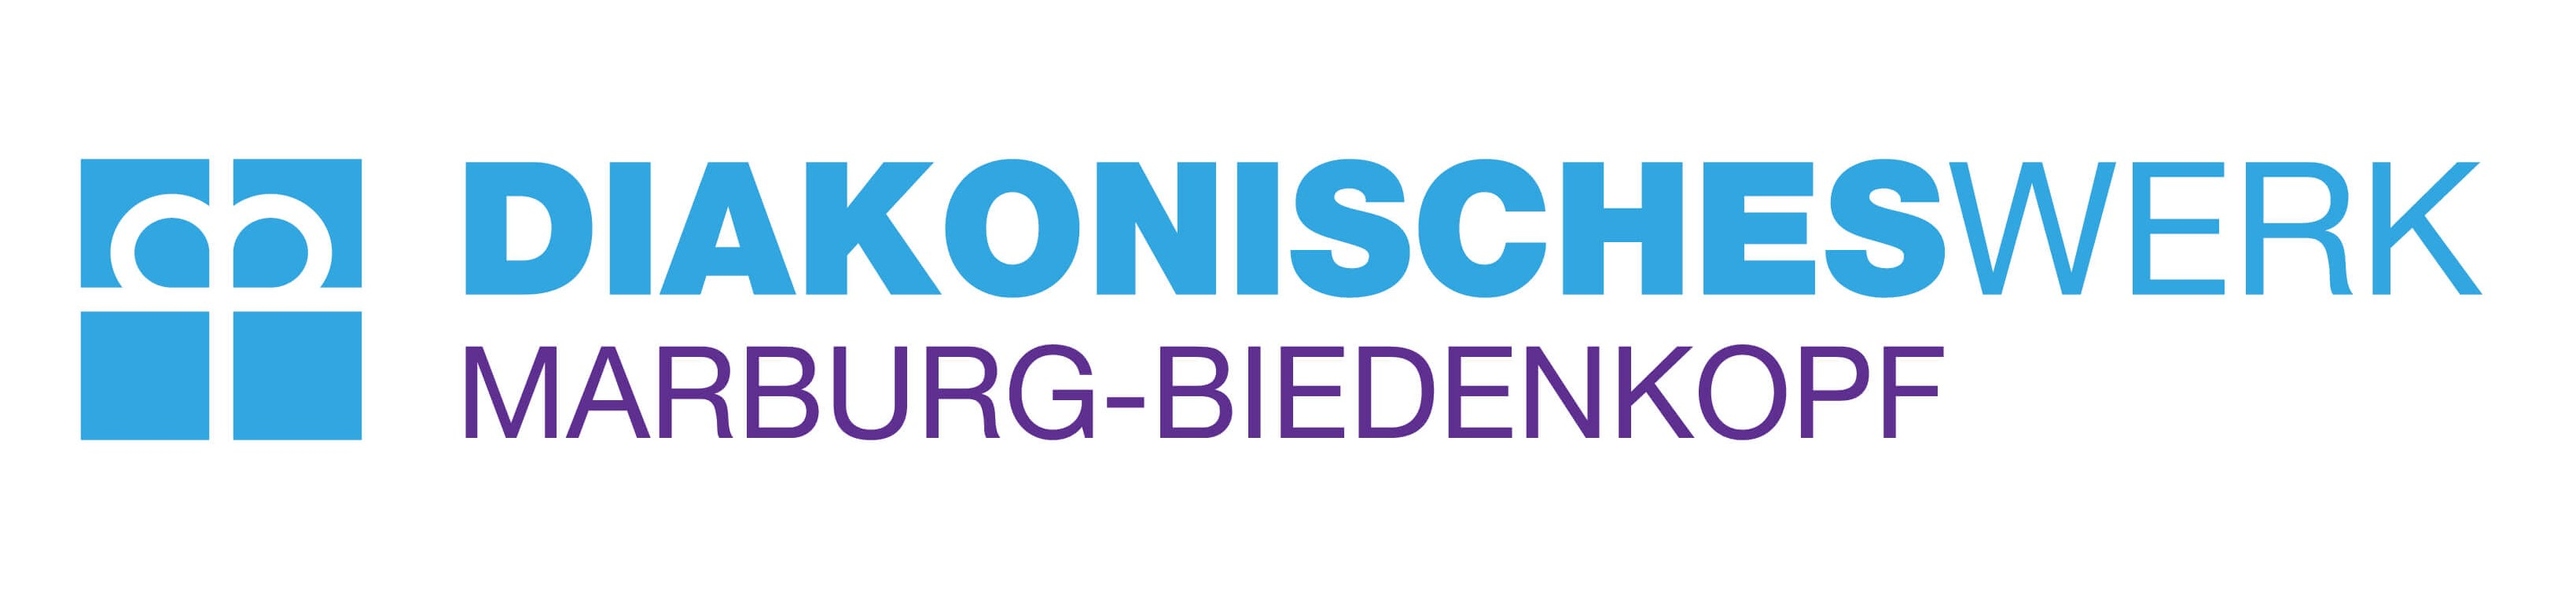 Logo DiakonischesWerk horizontal cutted